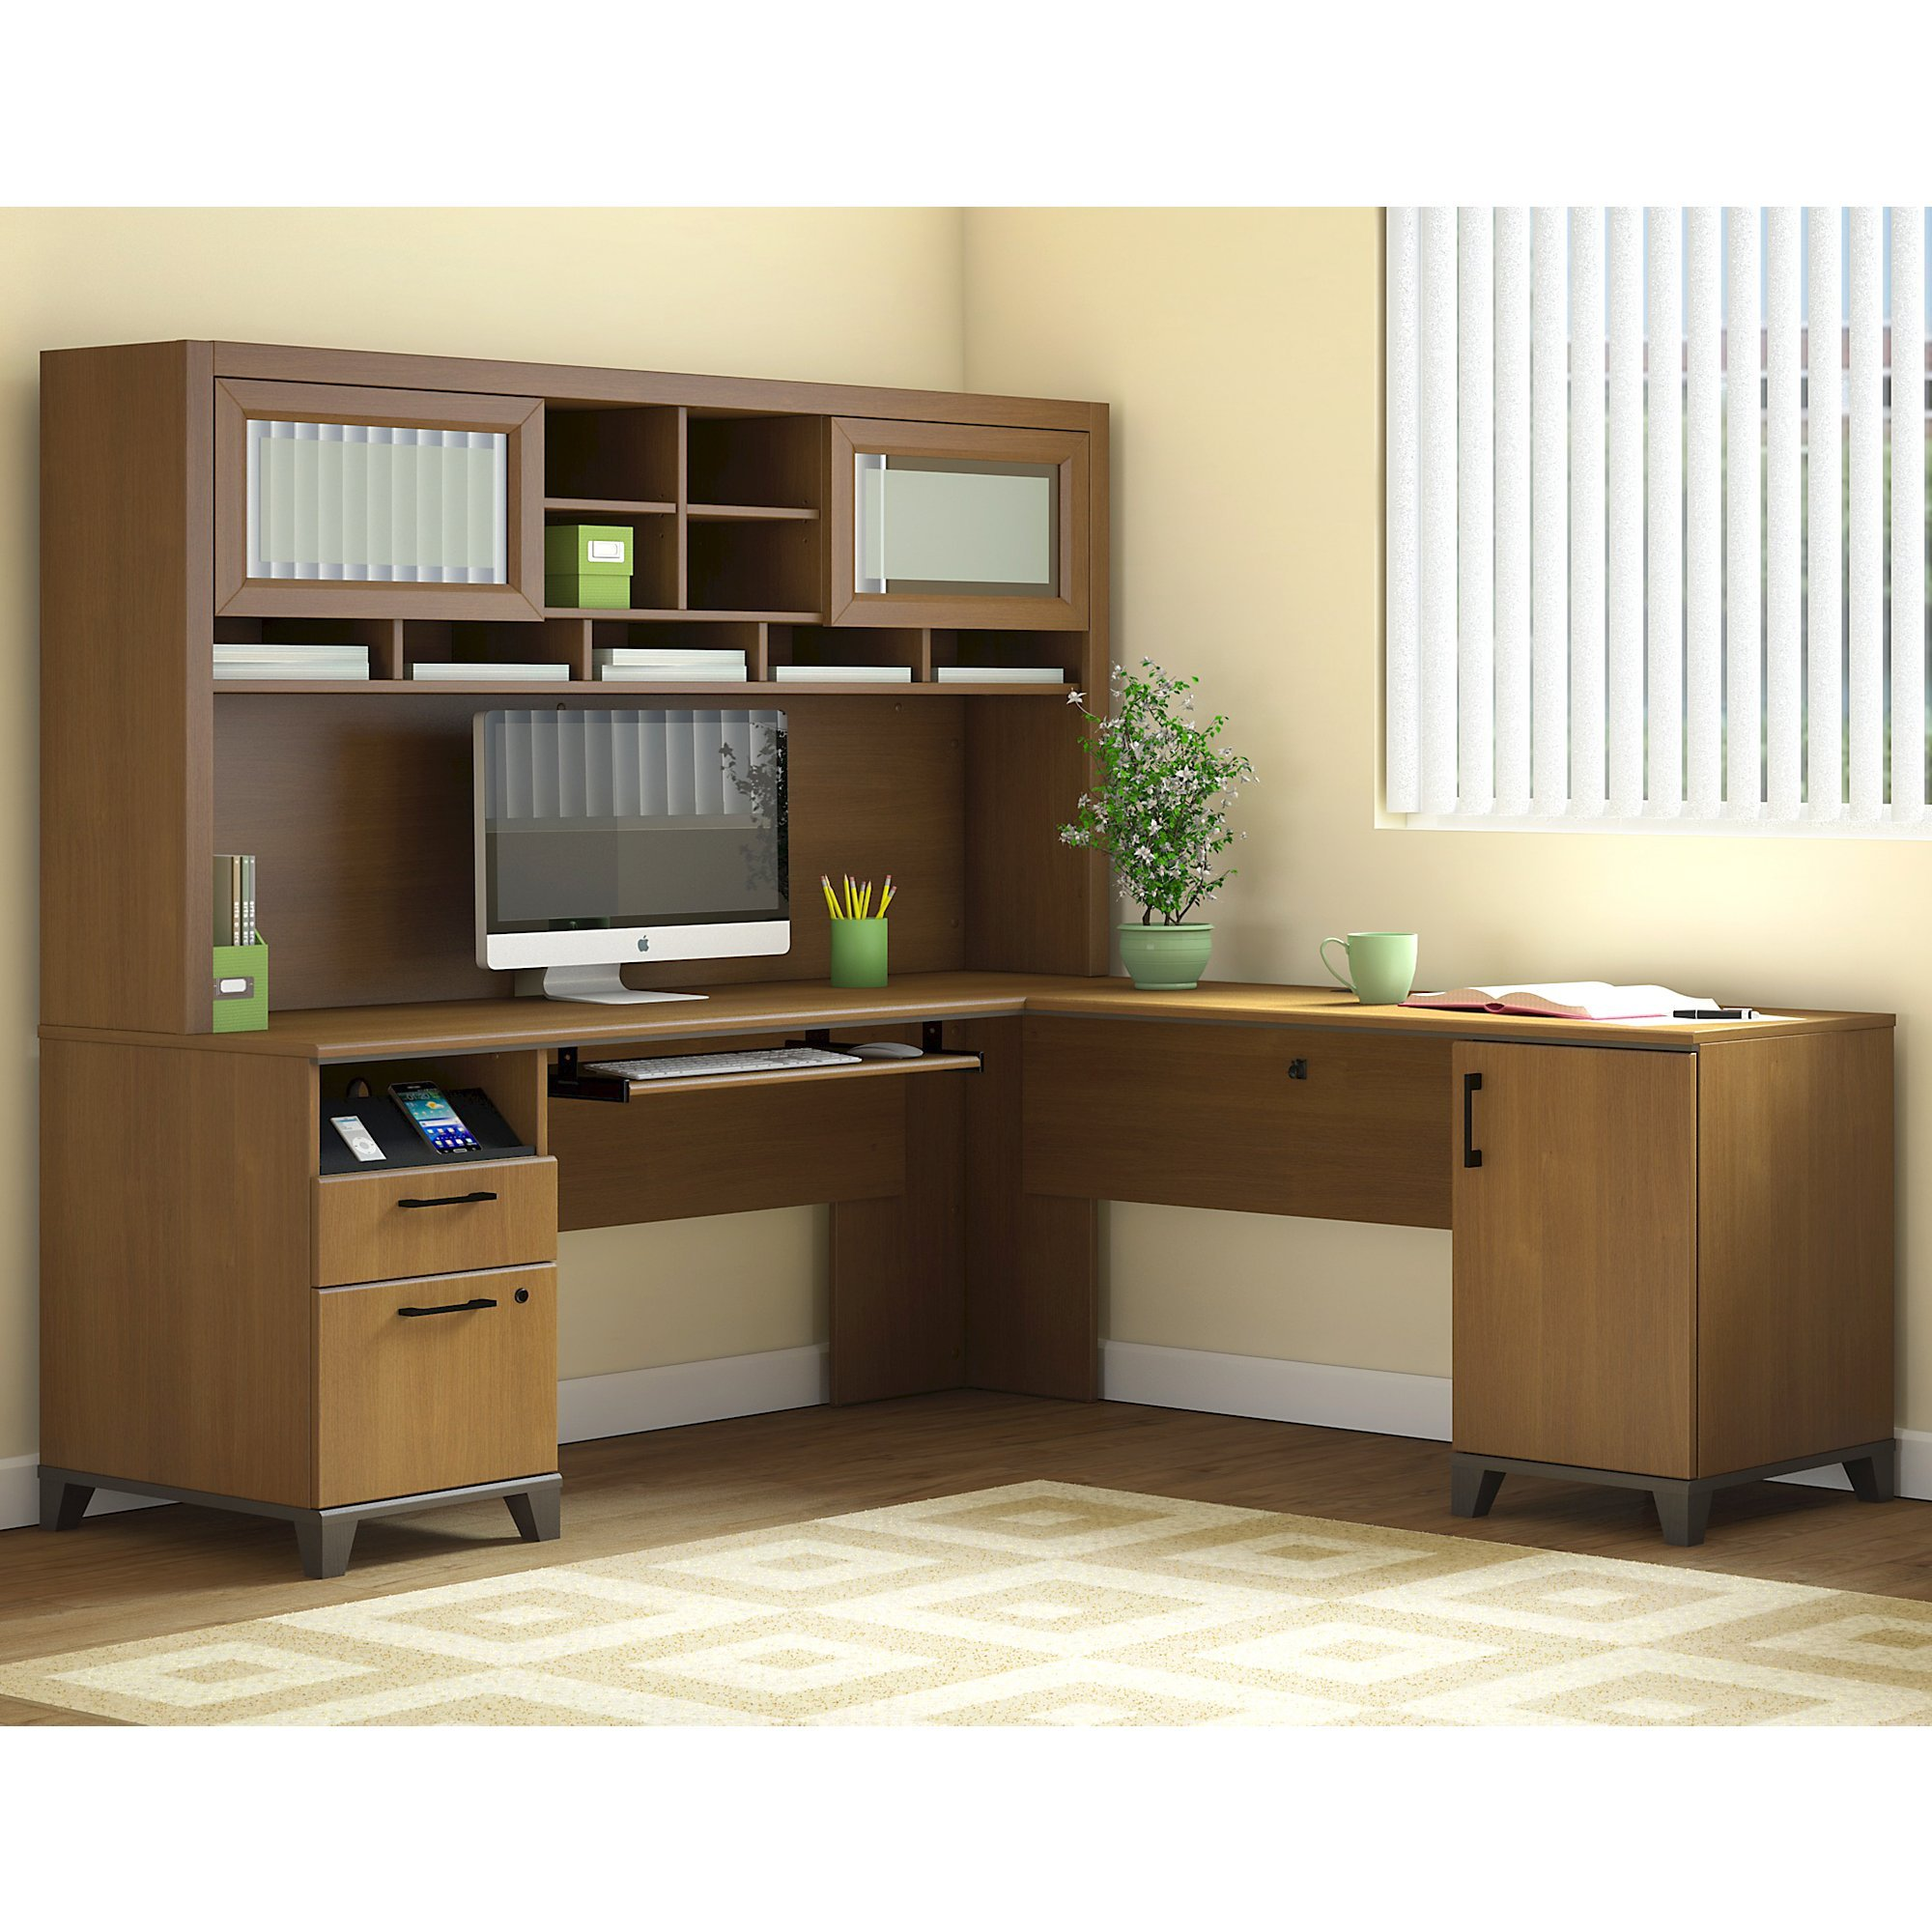 Best Rated In Home Office Furniture Sets & Helpful